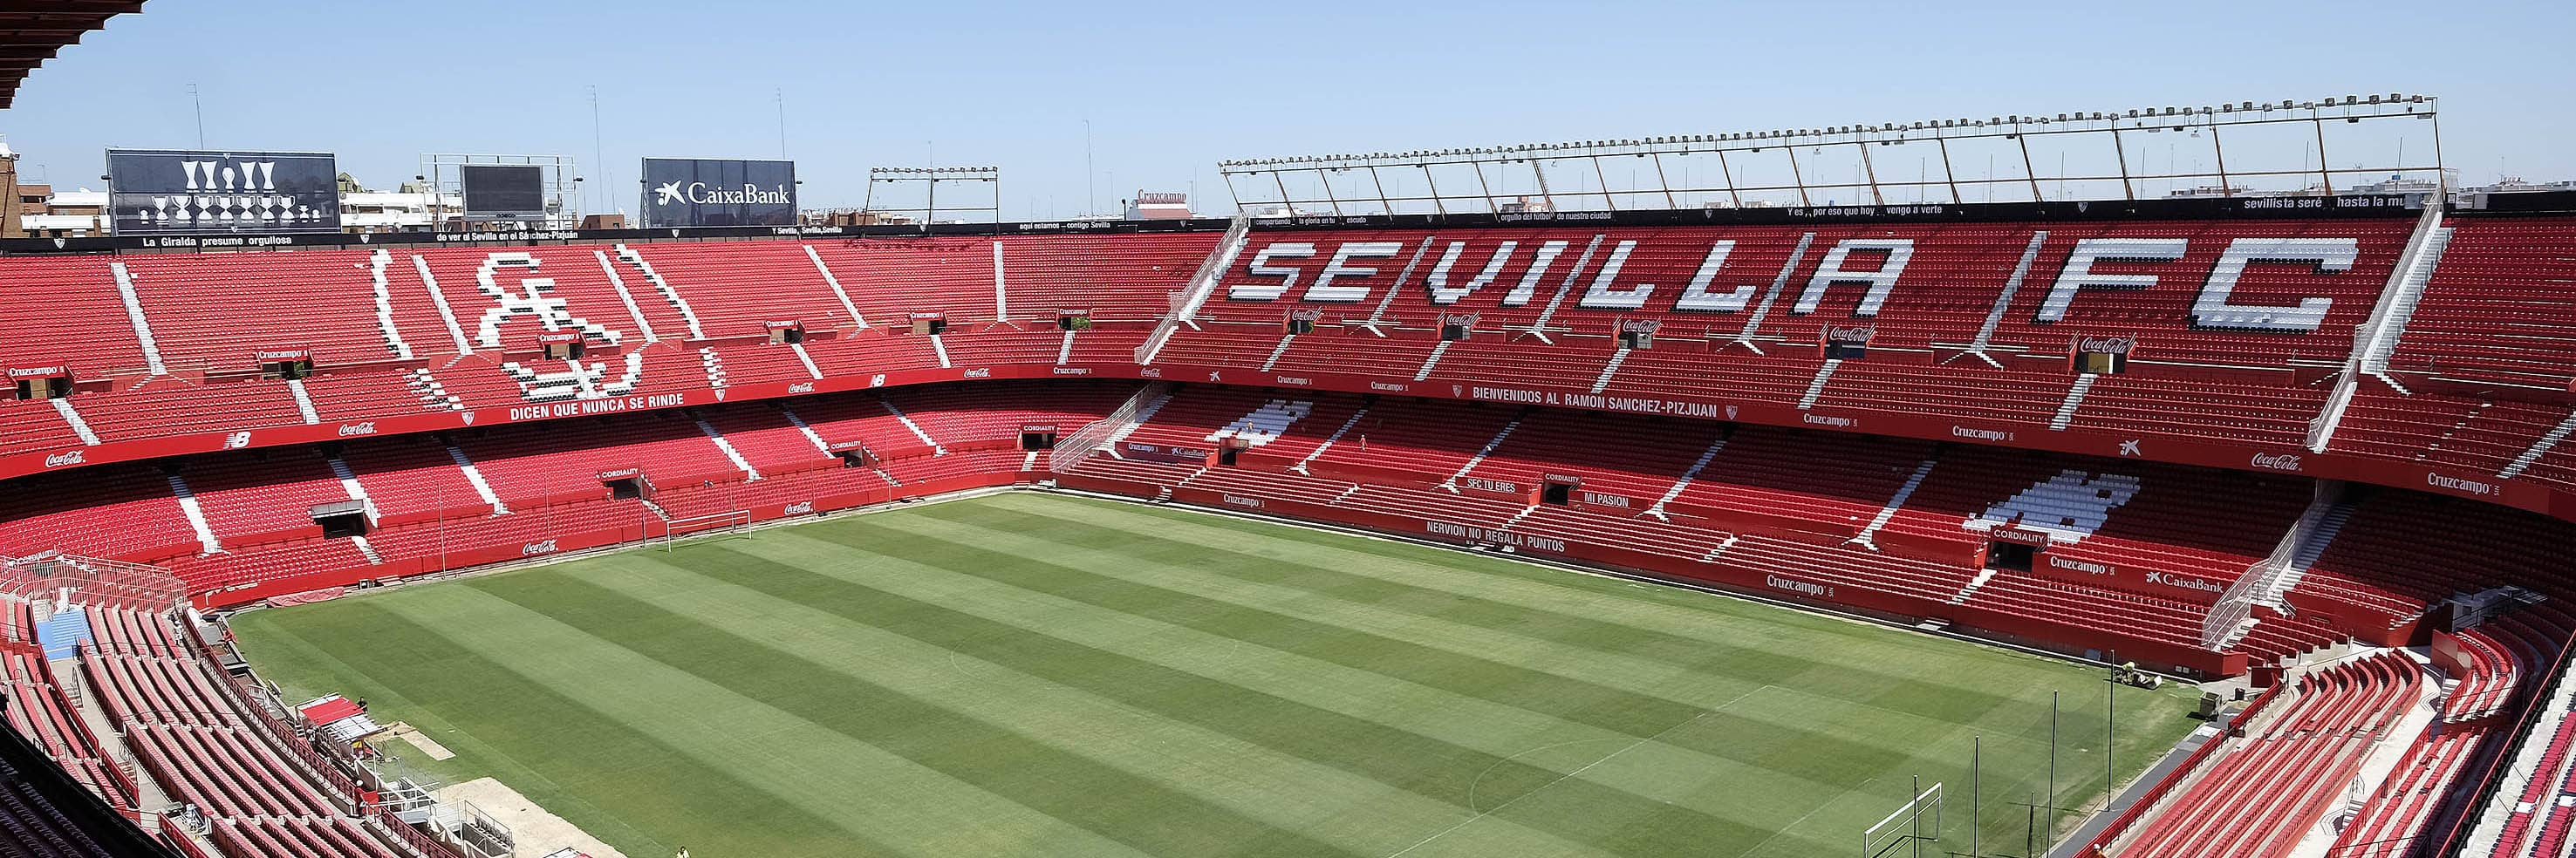 Sevilla FC - Real Madrid, 0 Septemberat 0:00